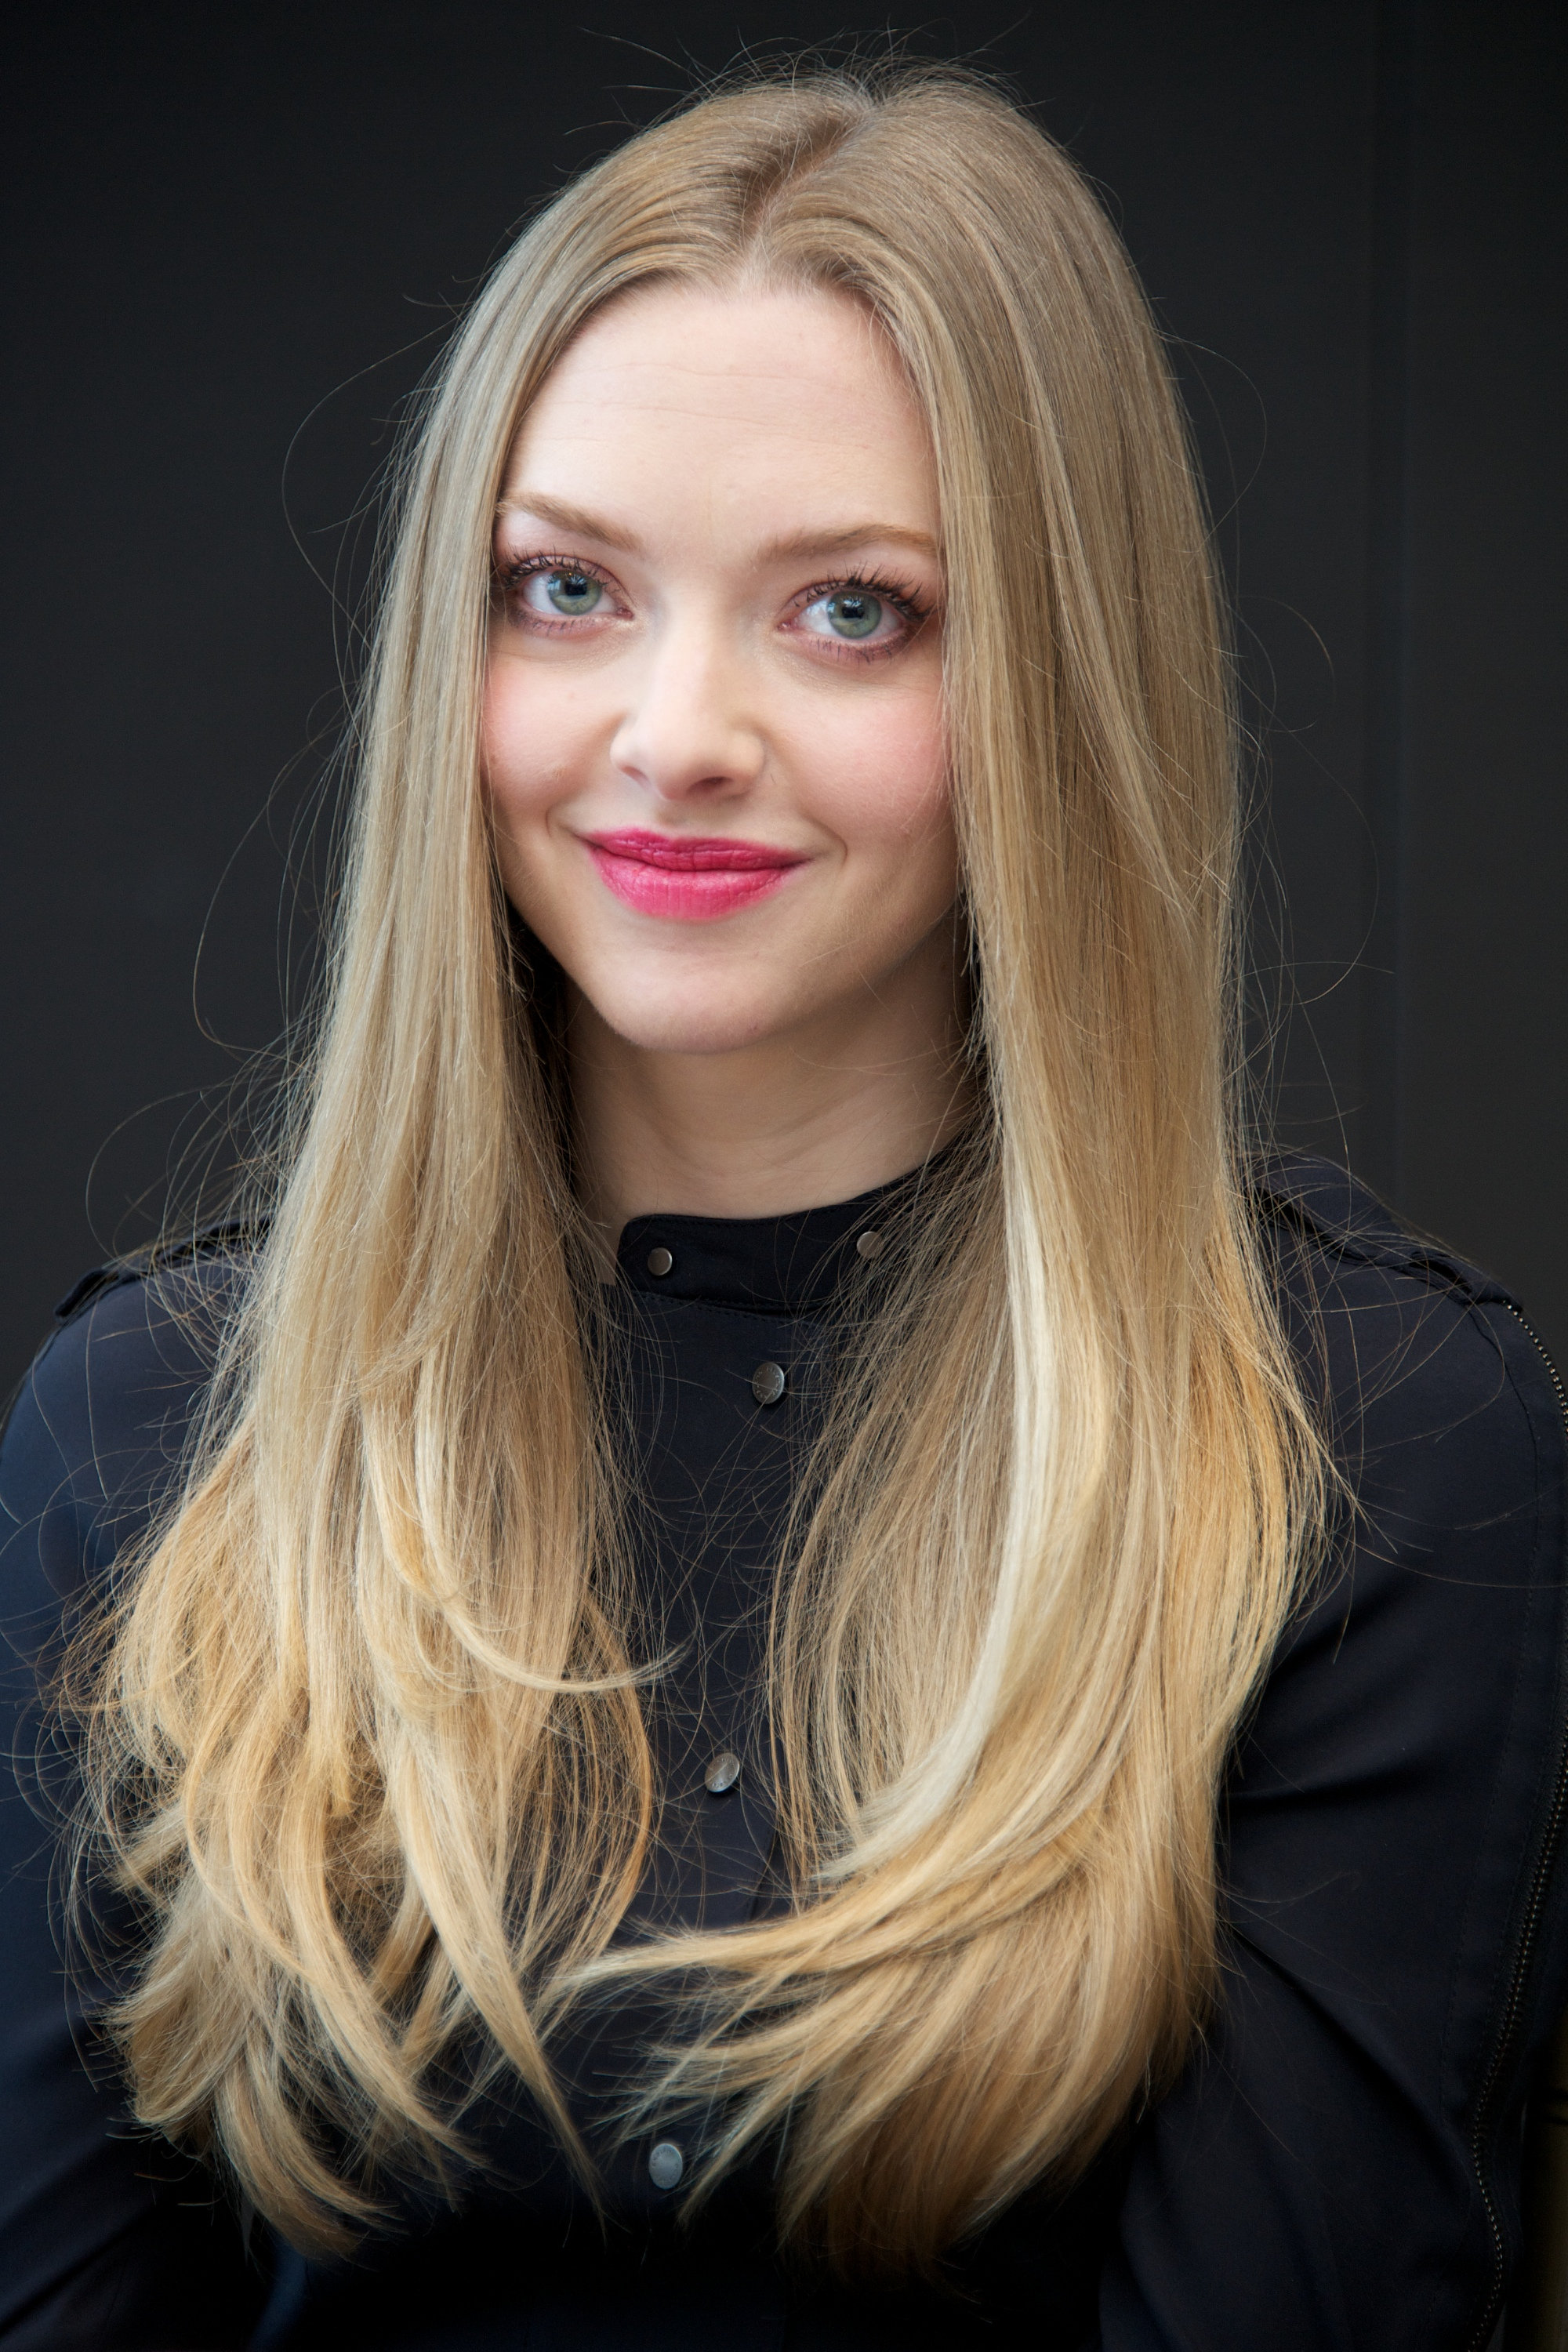 dreamology amanda seyfried hd - photo #20